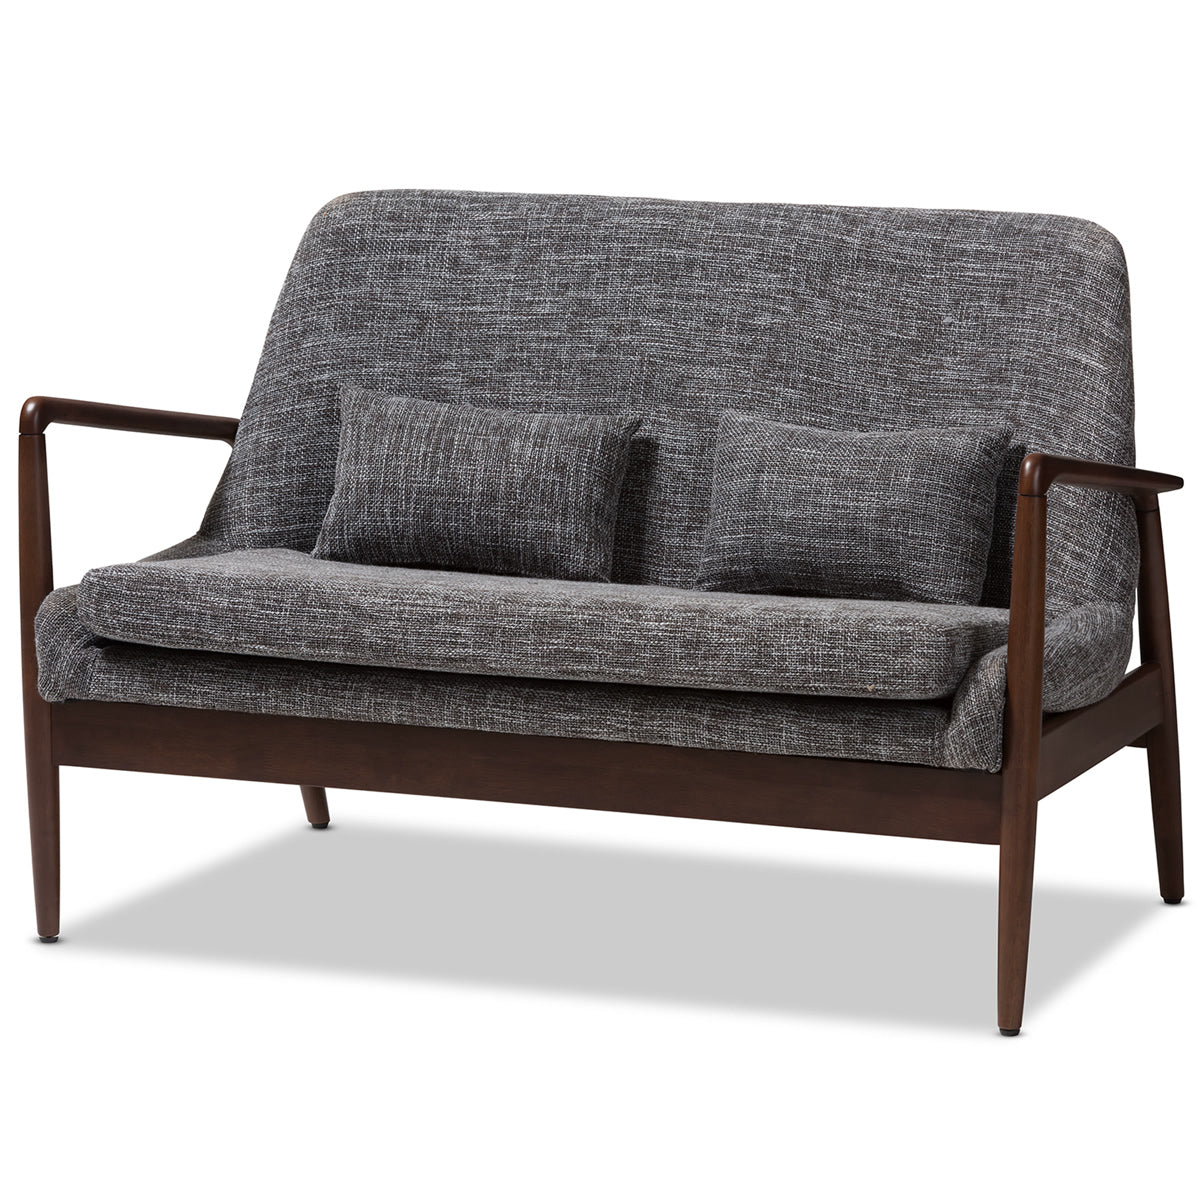 Baxton Studio Carter Mid-Century Modern Walnut Wood Grey Fabric Upholstered 2-seater Loveseat Baxton Studio-sofas-Minimal And Modern - 1